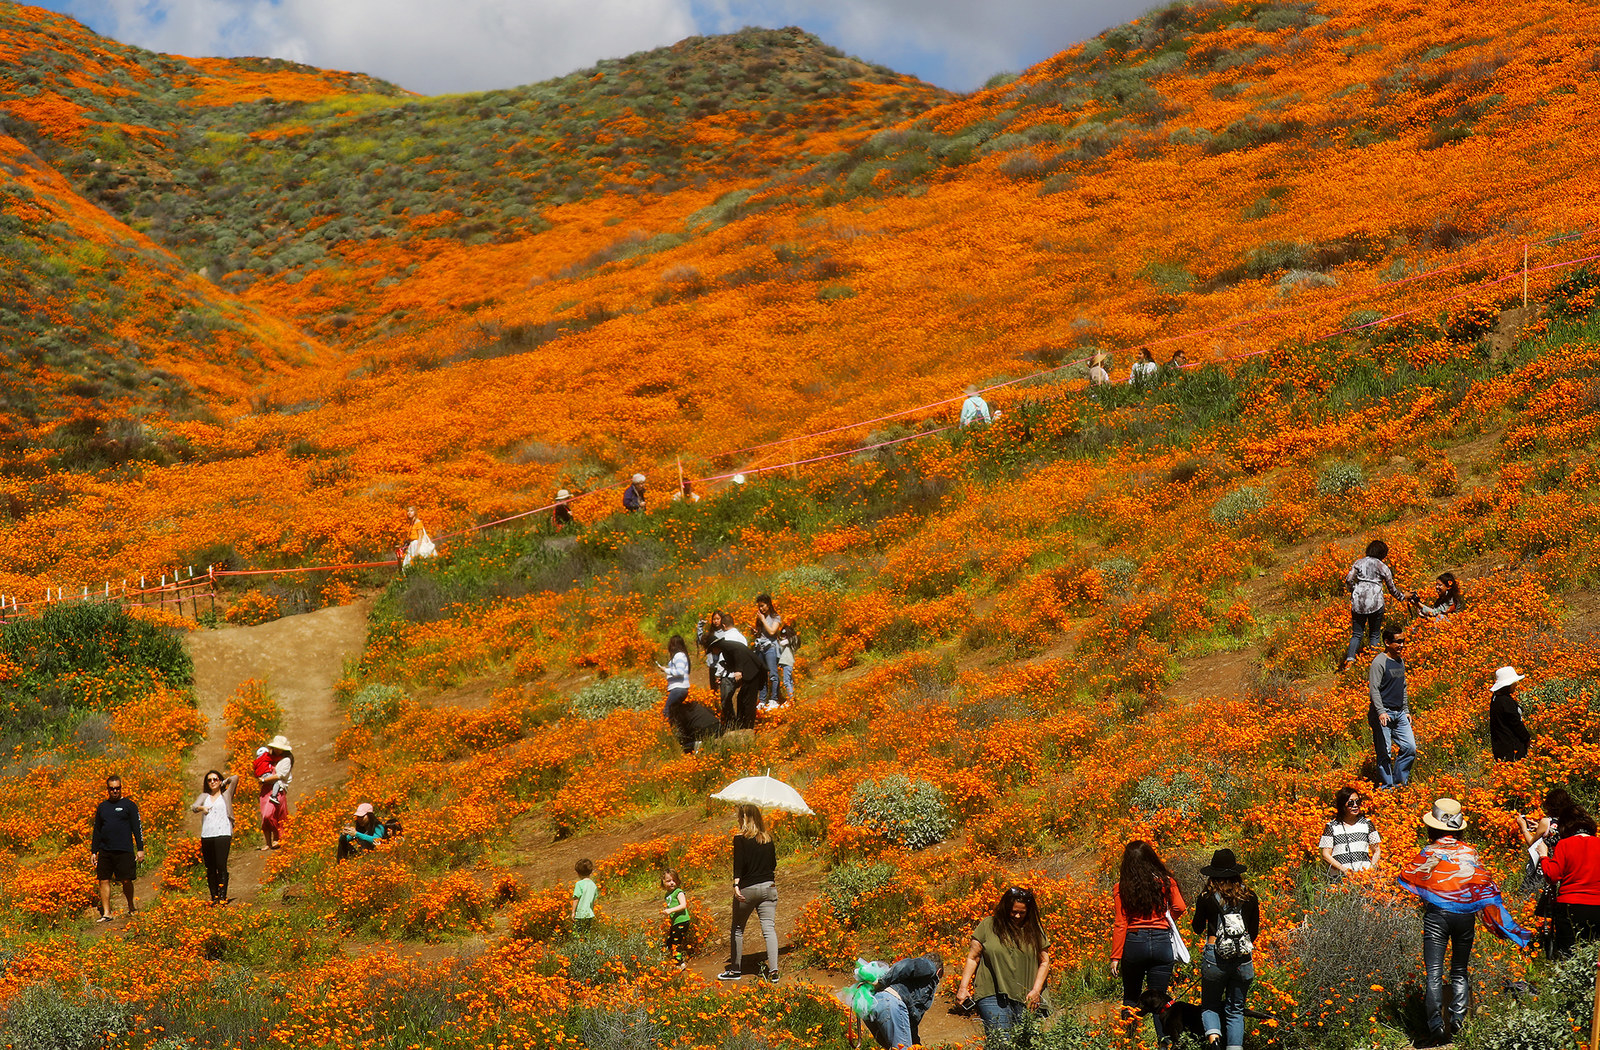 People visit wild poppies blanketing the hills of Walker Canyon, March 12.